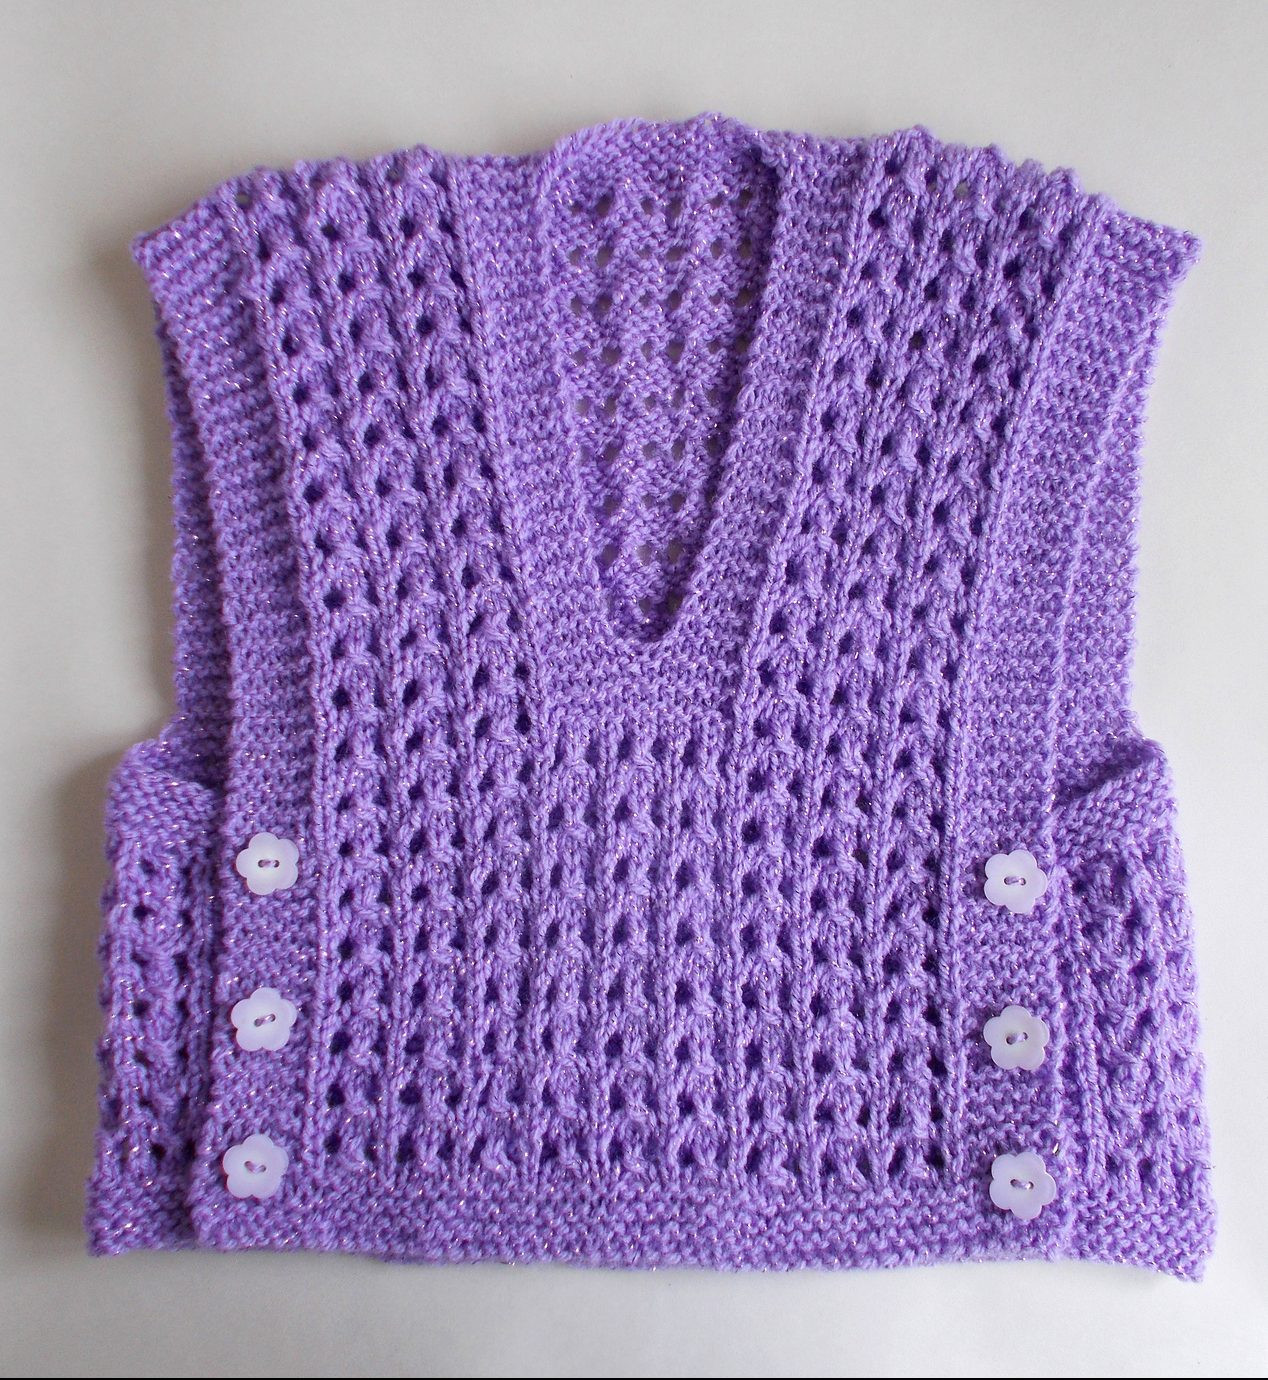 Inspirational Vests for Babies and Children Knitting Patterns Free Knitting Patterns for Children Of Awesome 47 Models Free Knitting Patterns for Children